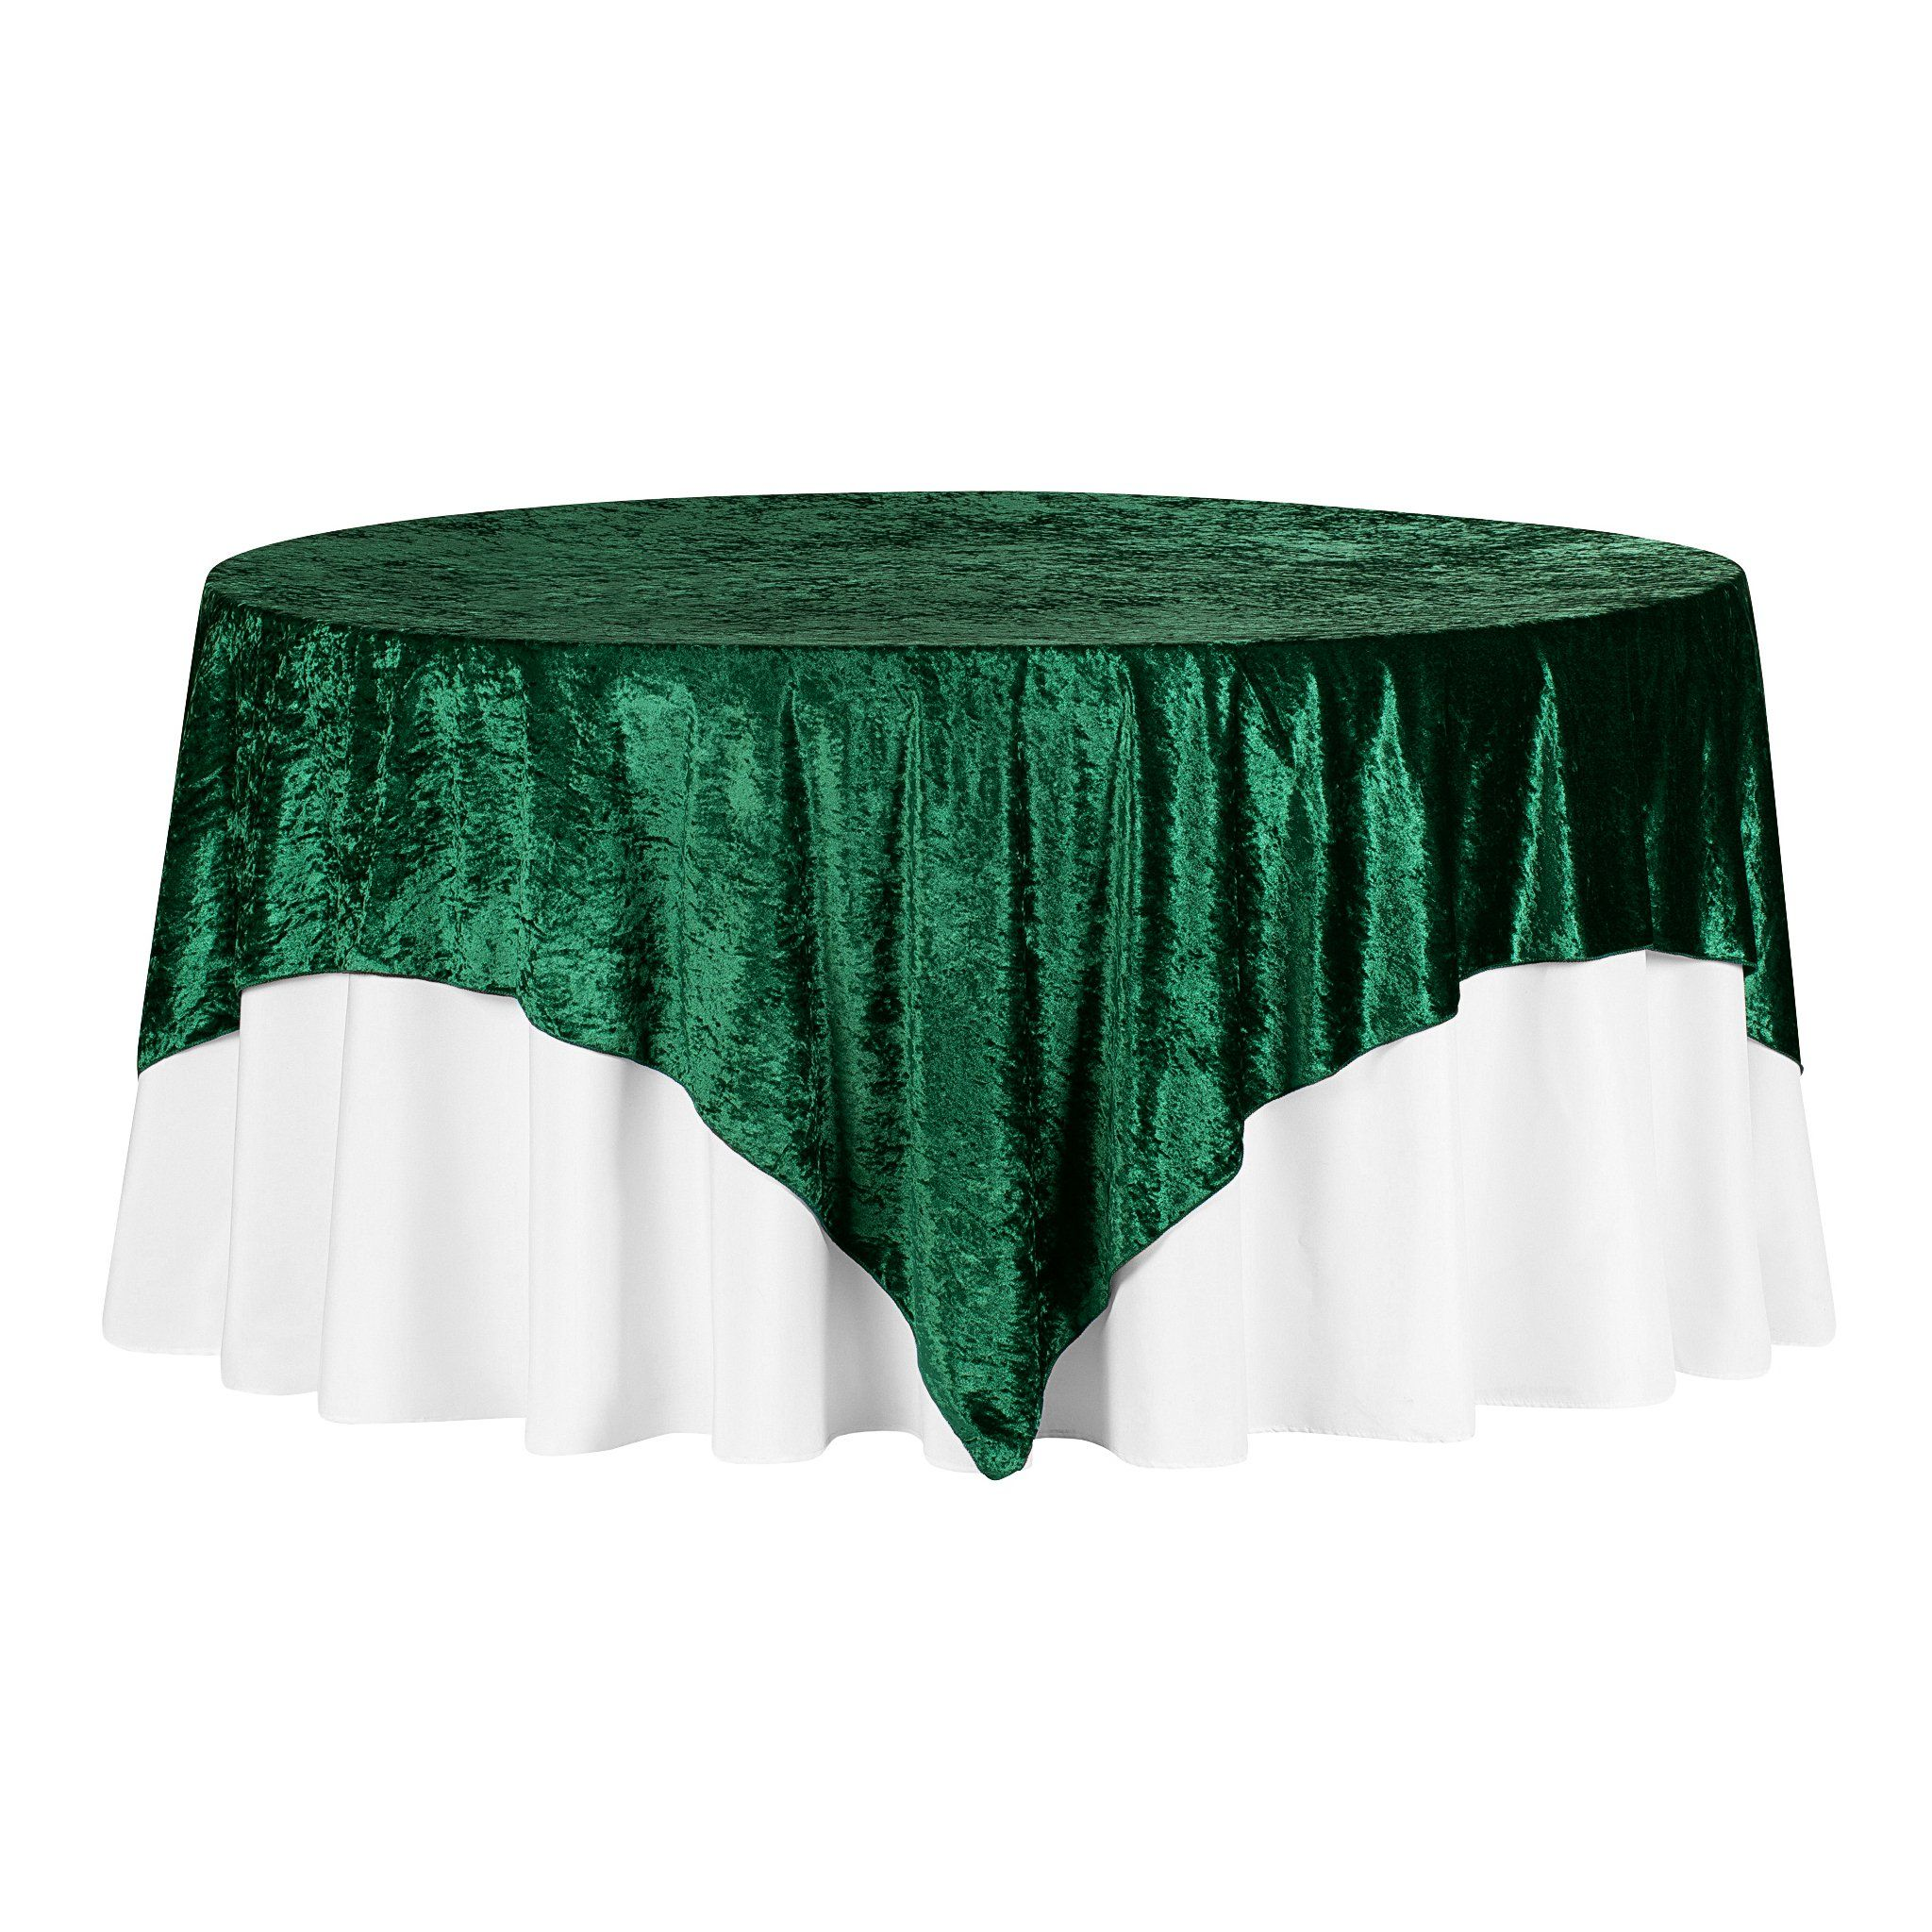 """Velvet 85""""x85"""" Square Tablecloth Table Overlay - Emerald Green"""